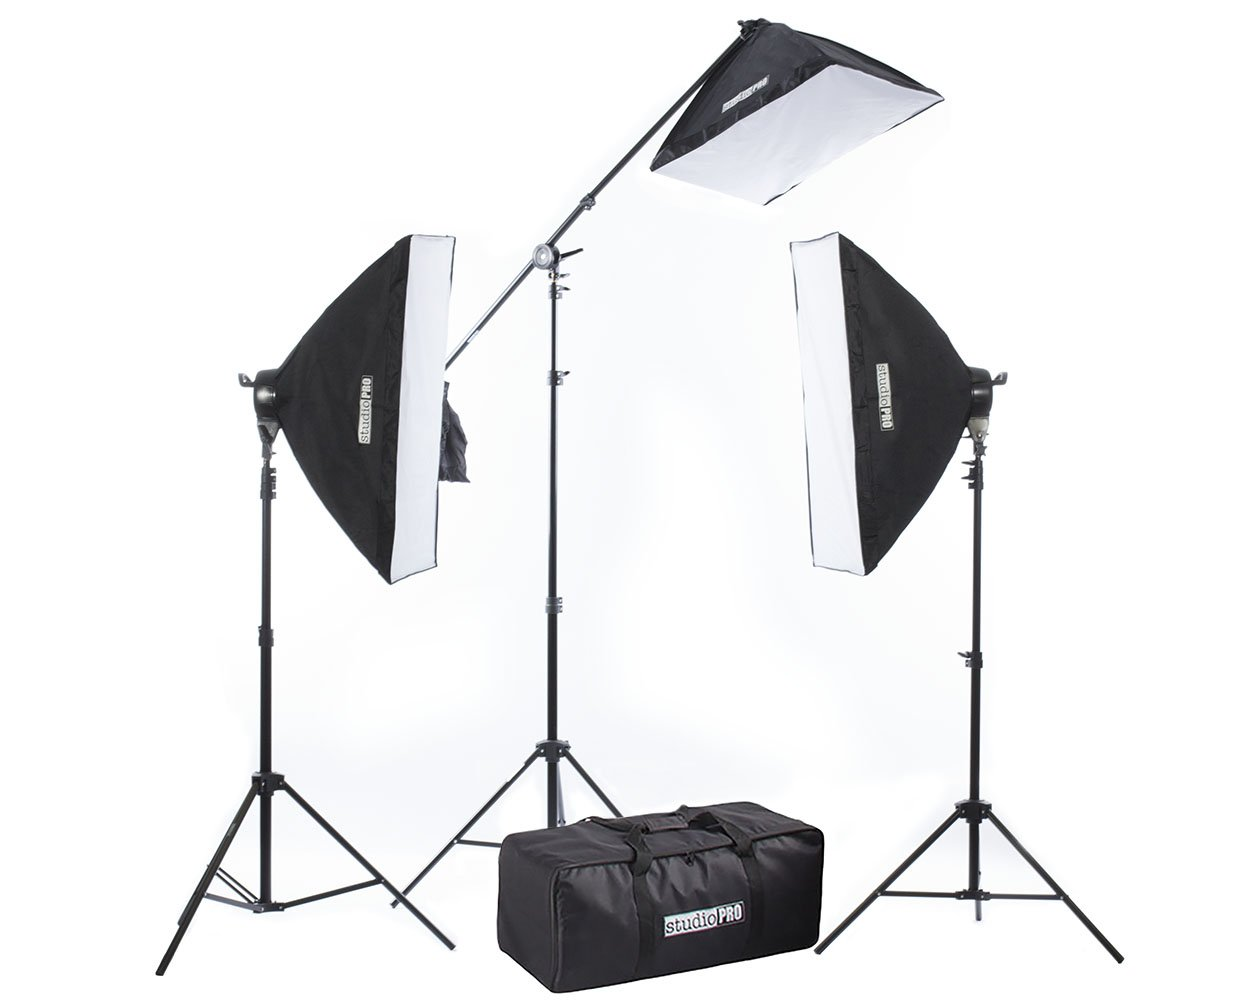 Fovitec - 1x Photography & Video 20''x28'' Softbox Continuous Lighting Kit w/ 2500W Equivalent Total Output - [Includes Boom, Stands, Softboxes, Bag, 11x 45W Bulbs] by Fovitec